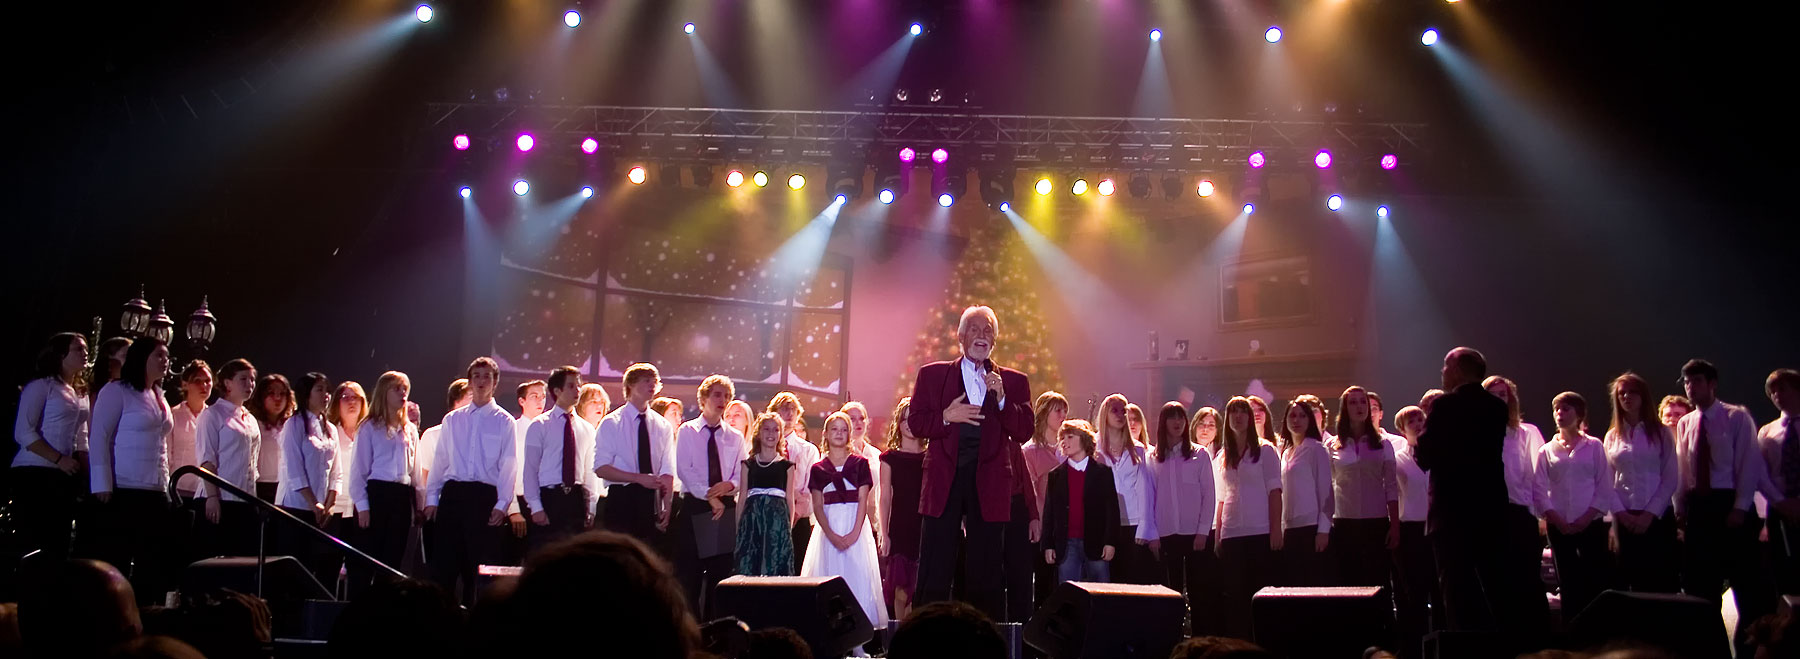 Kenny Rogers Western Canada Christmas Tour, with Production Services from Allstar Show Industries